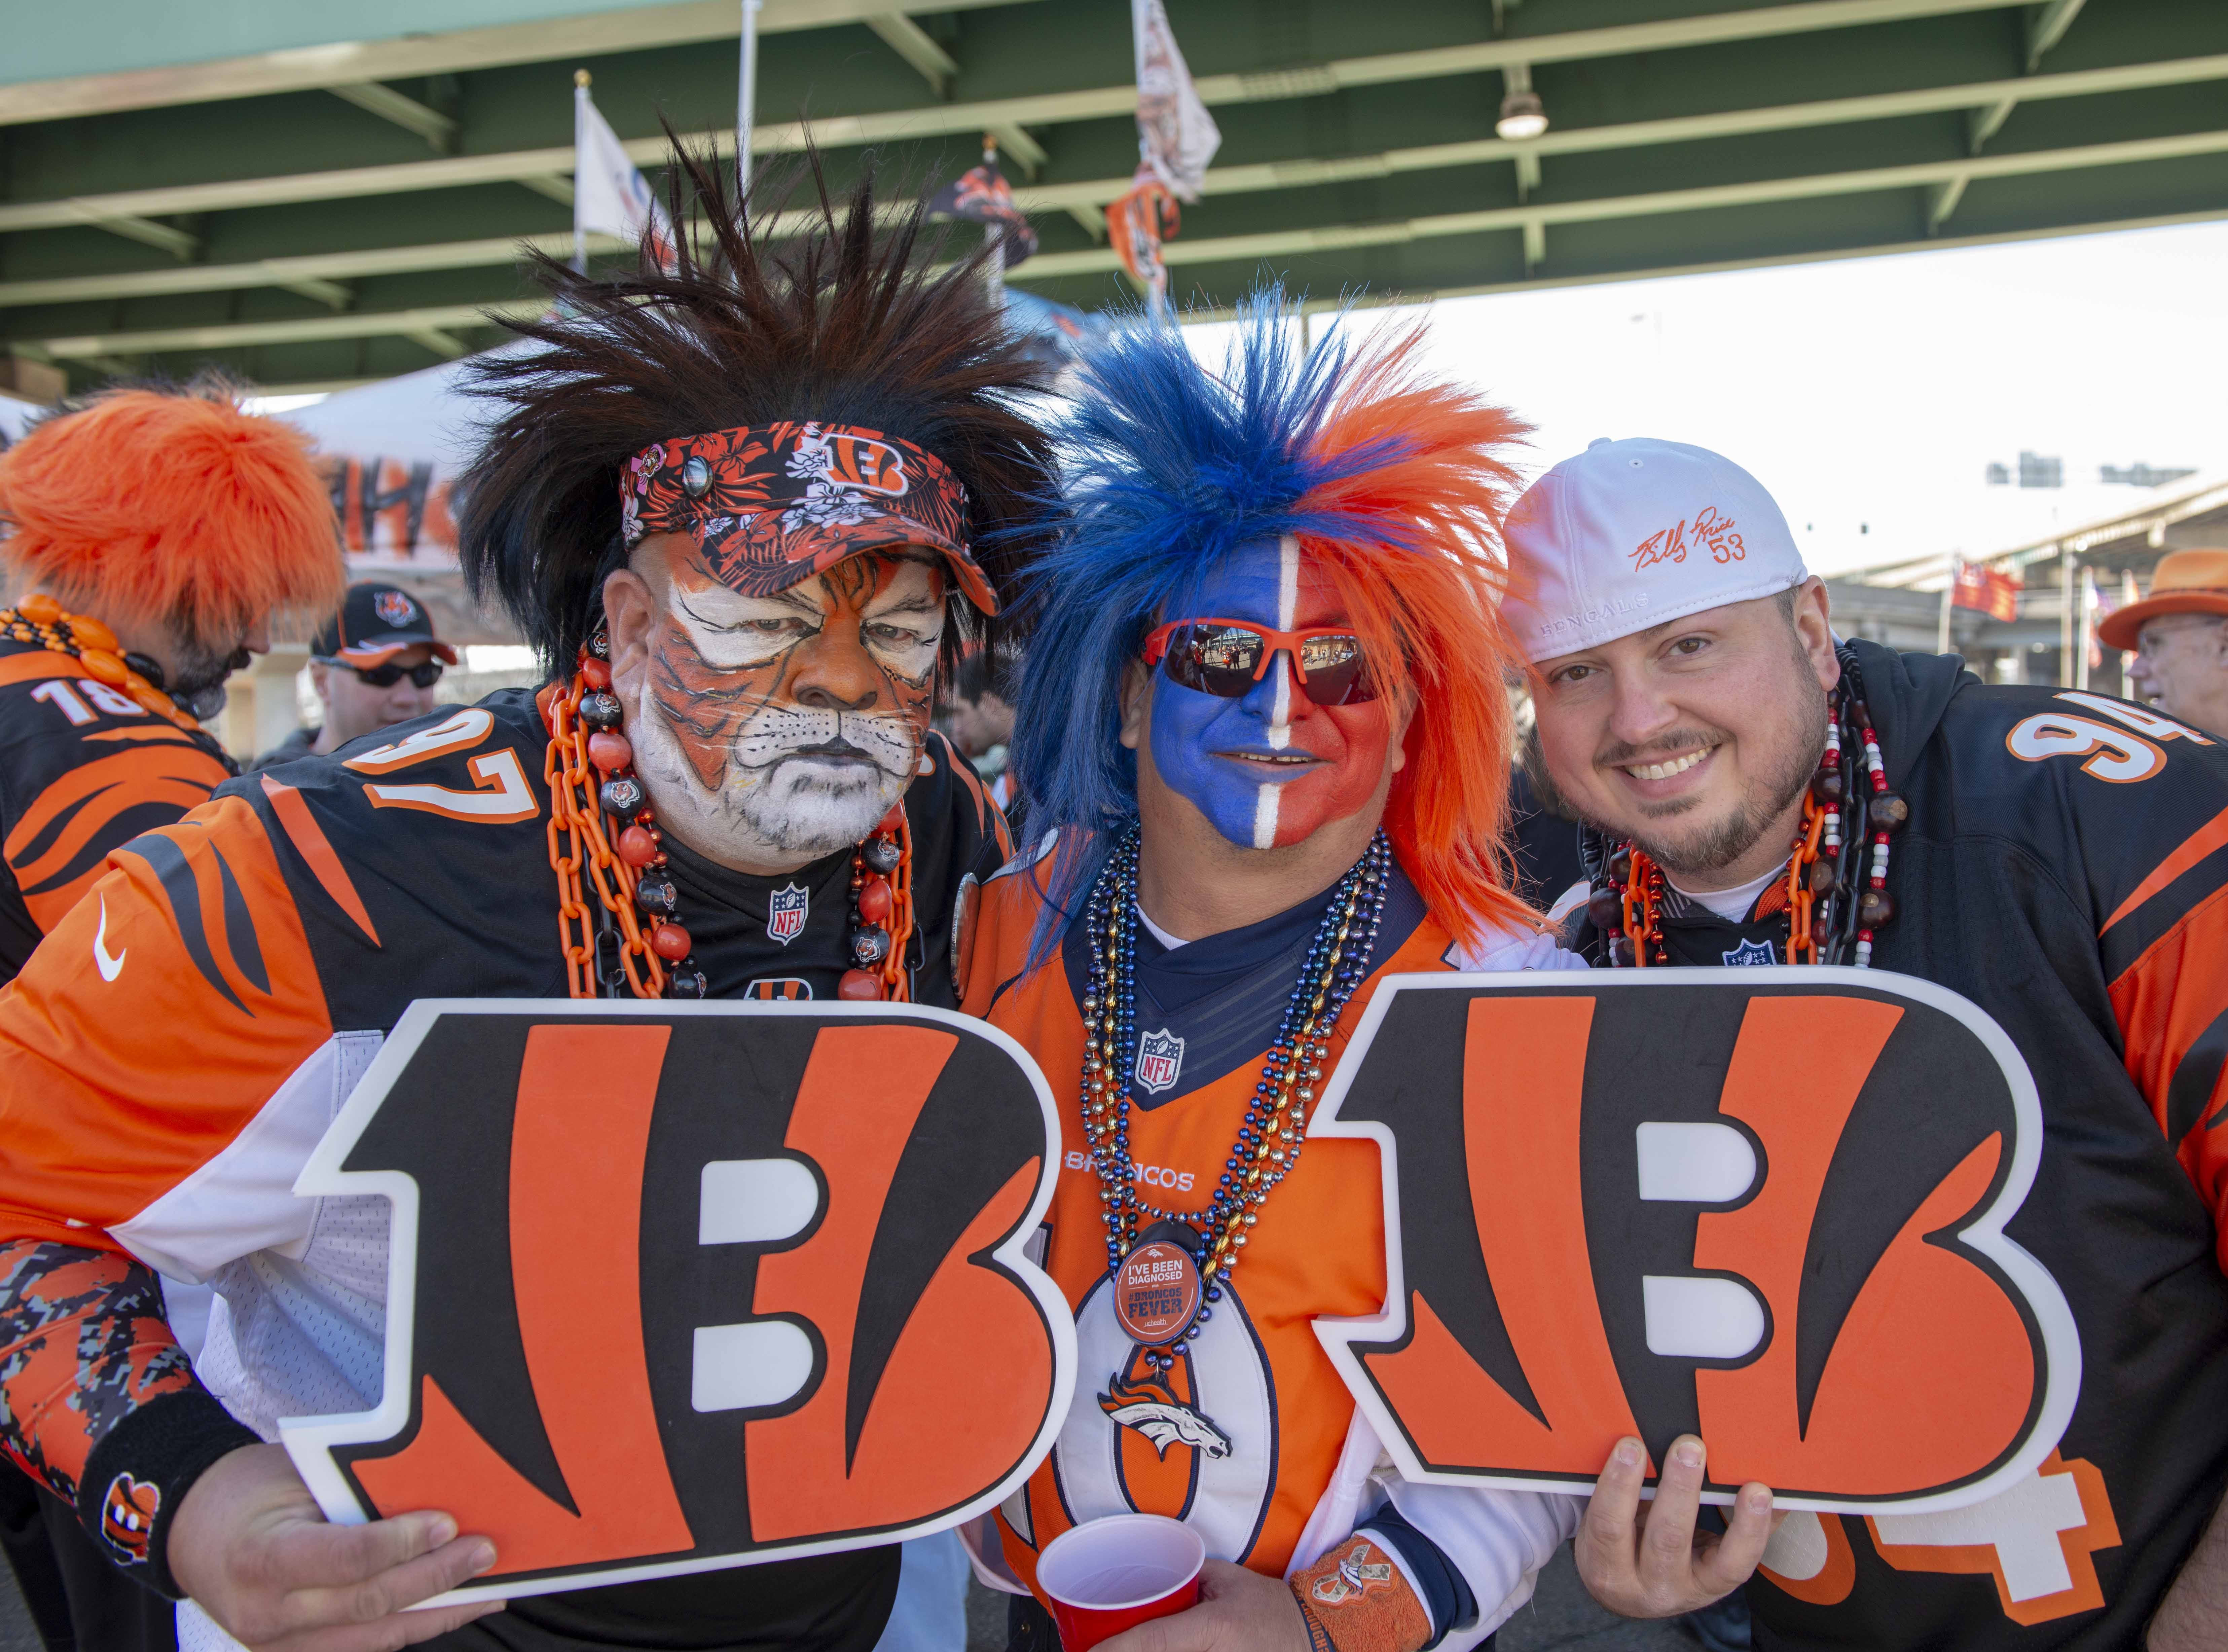 Cincinnati Bengals fans showed up for tailgating parties as the Cincinnati Bengals hosted the Denver Broncos at Paul Brown Stadium Sunday, December 2, 2018. Tony the Tiger, Ken Castaneda and Brad Sheets.